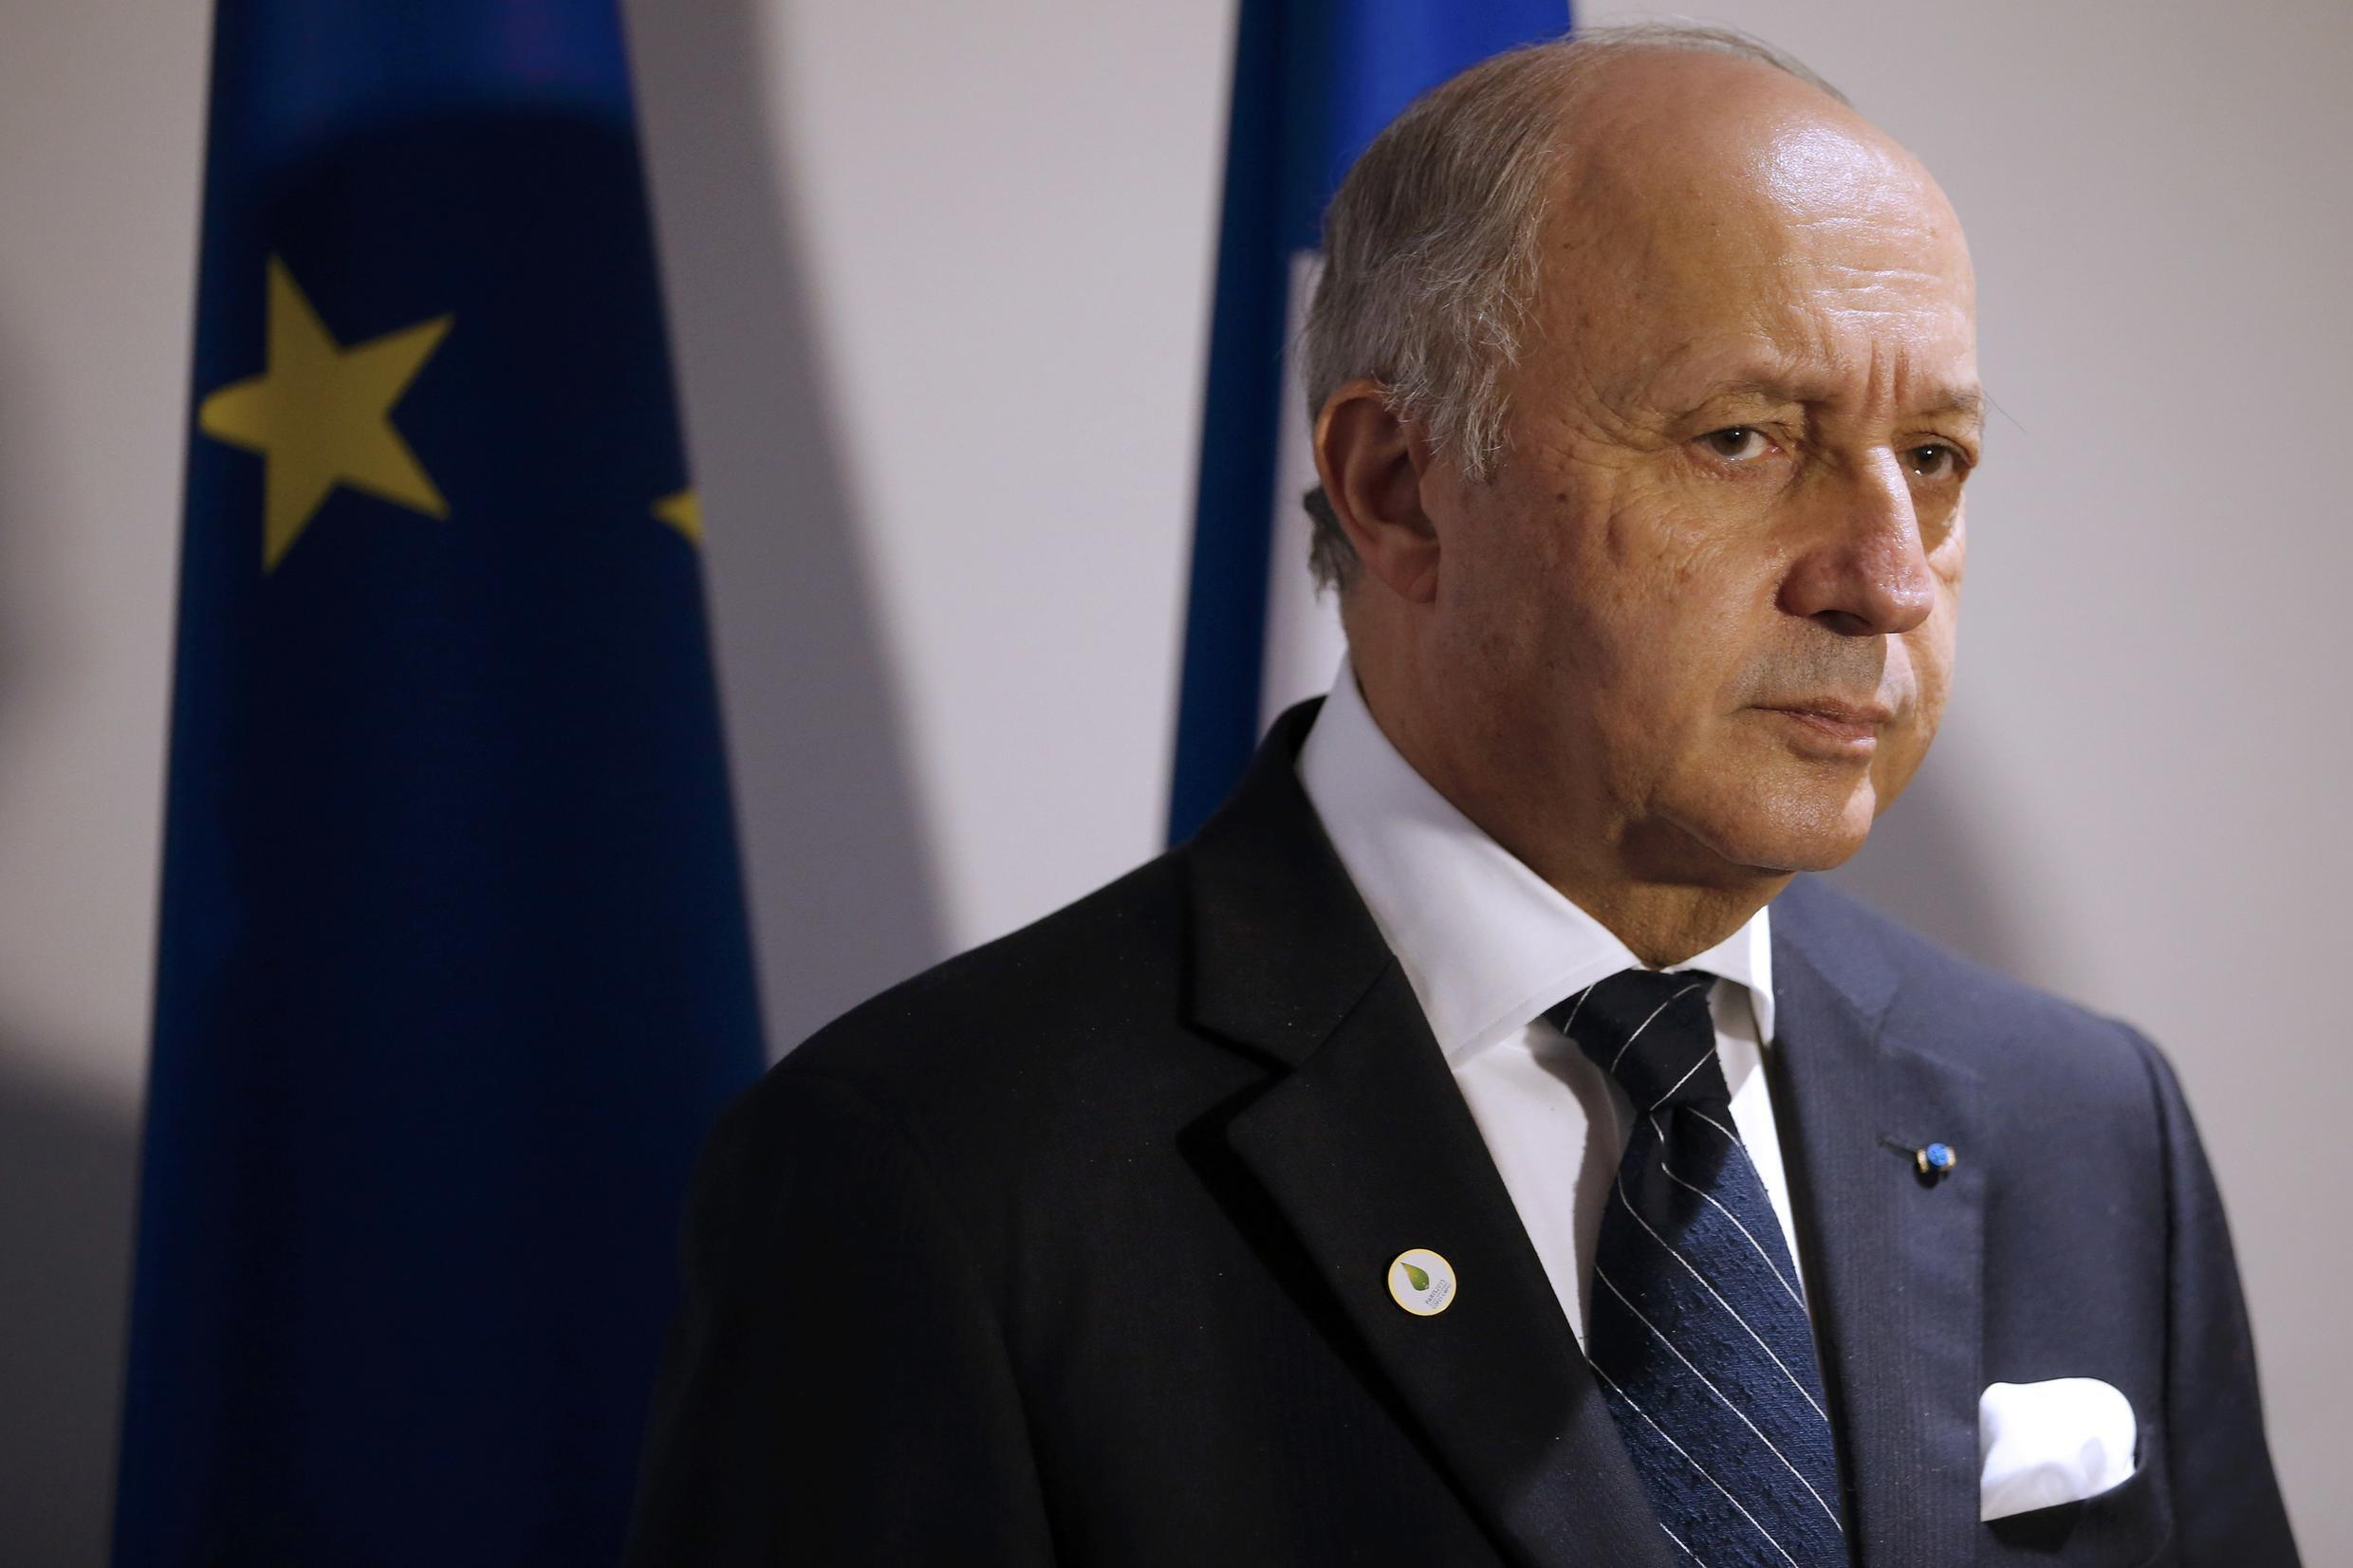 French Foreign Affairs Minister Laurent Fabius, the President-designate of COP21, attends a press conference during the World Climate Change Conference 2015 (COP21) at Le Bourget, near Paris, France, December 4, 2015.